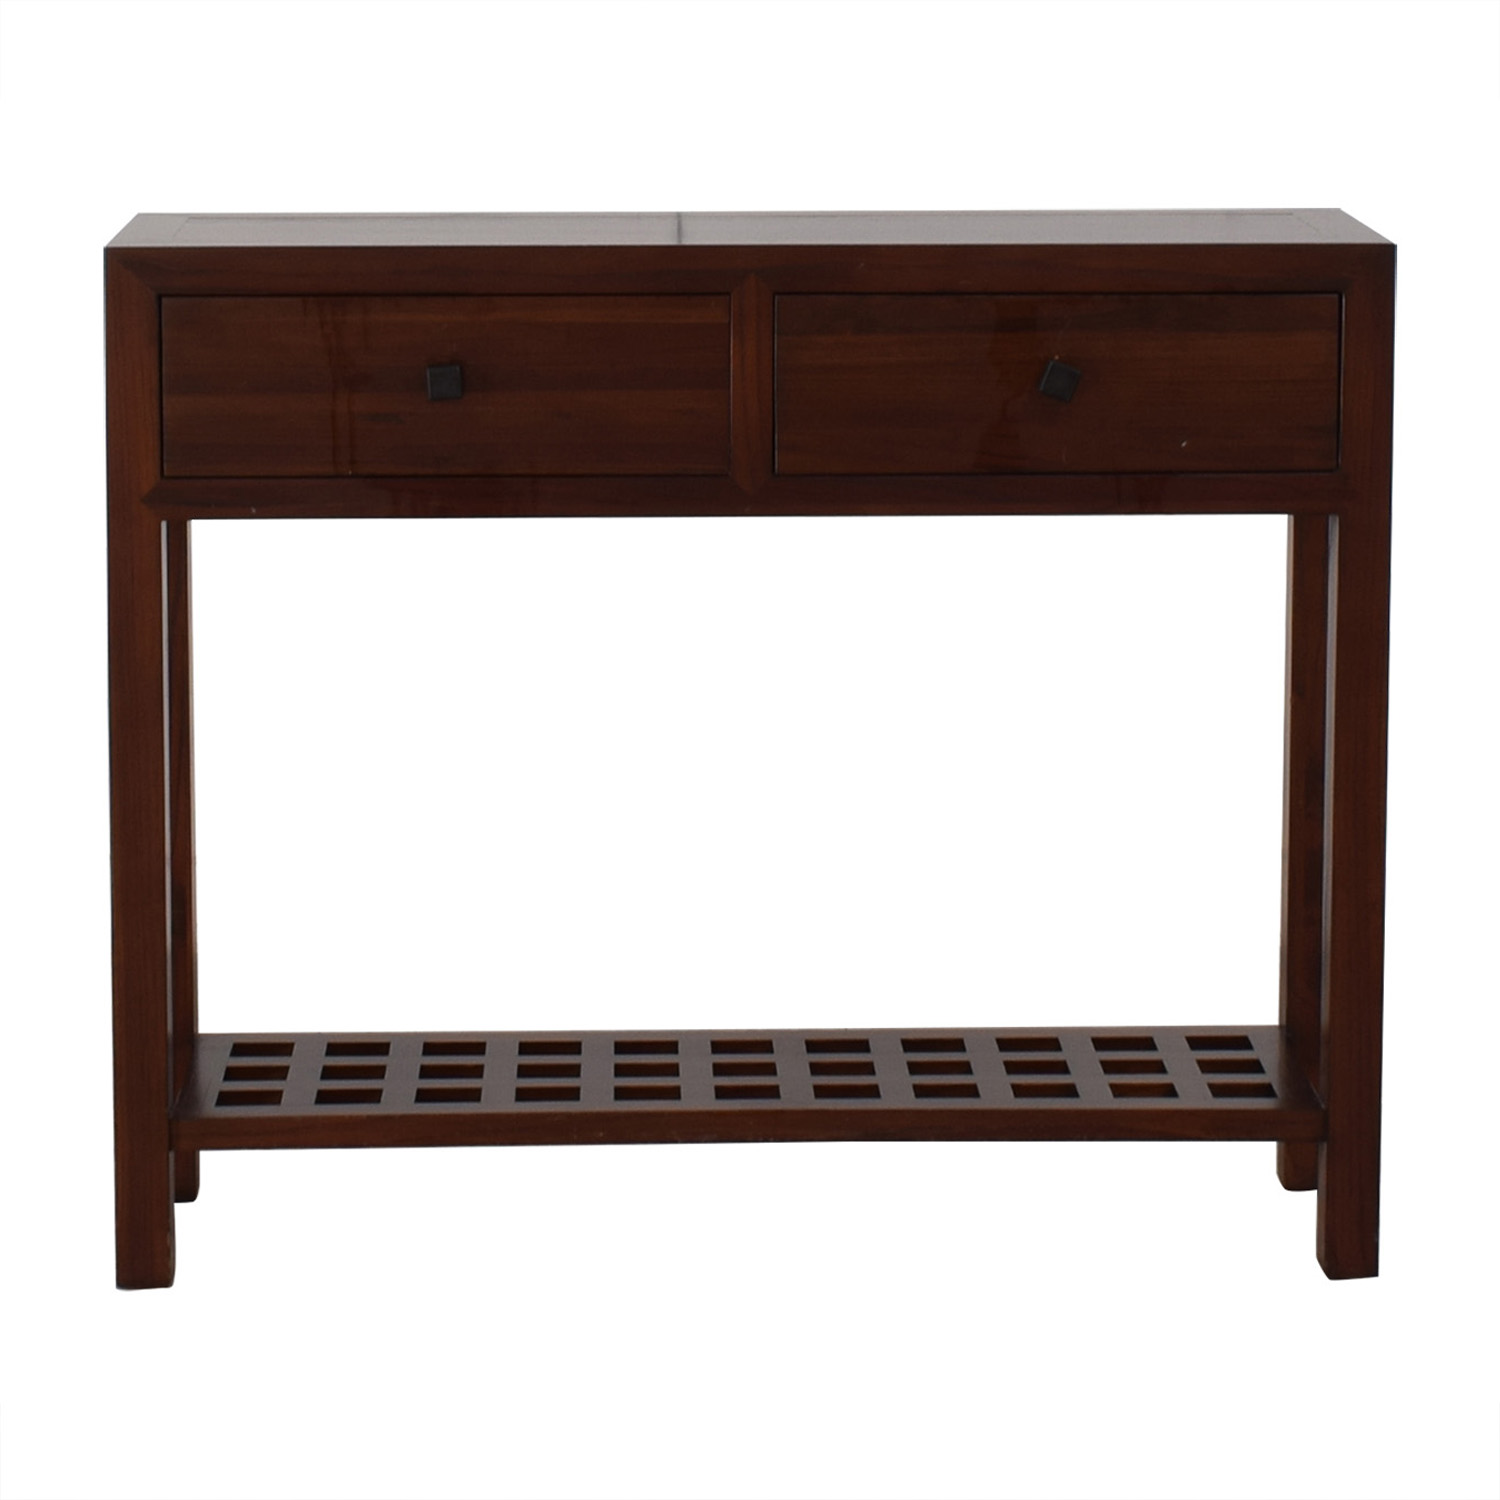 shop Room & Board by Maria Yee Console Table Room & Board